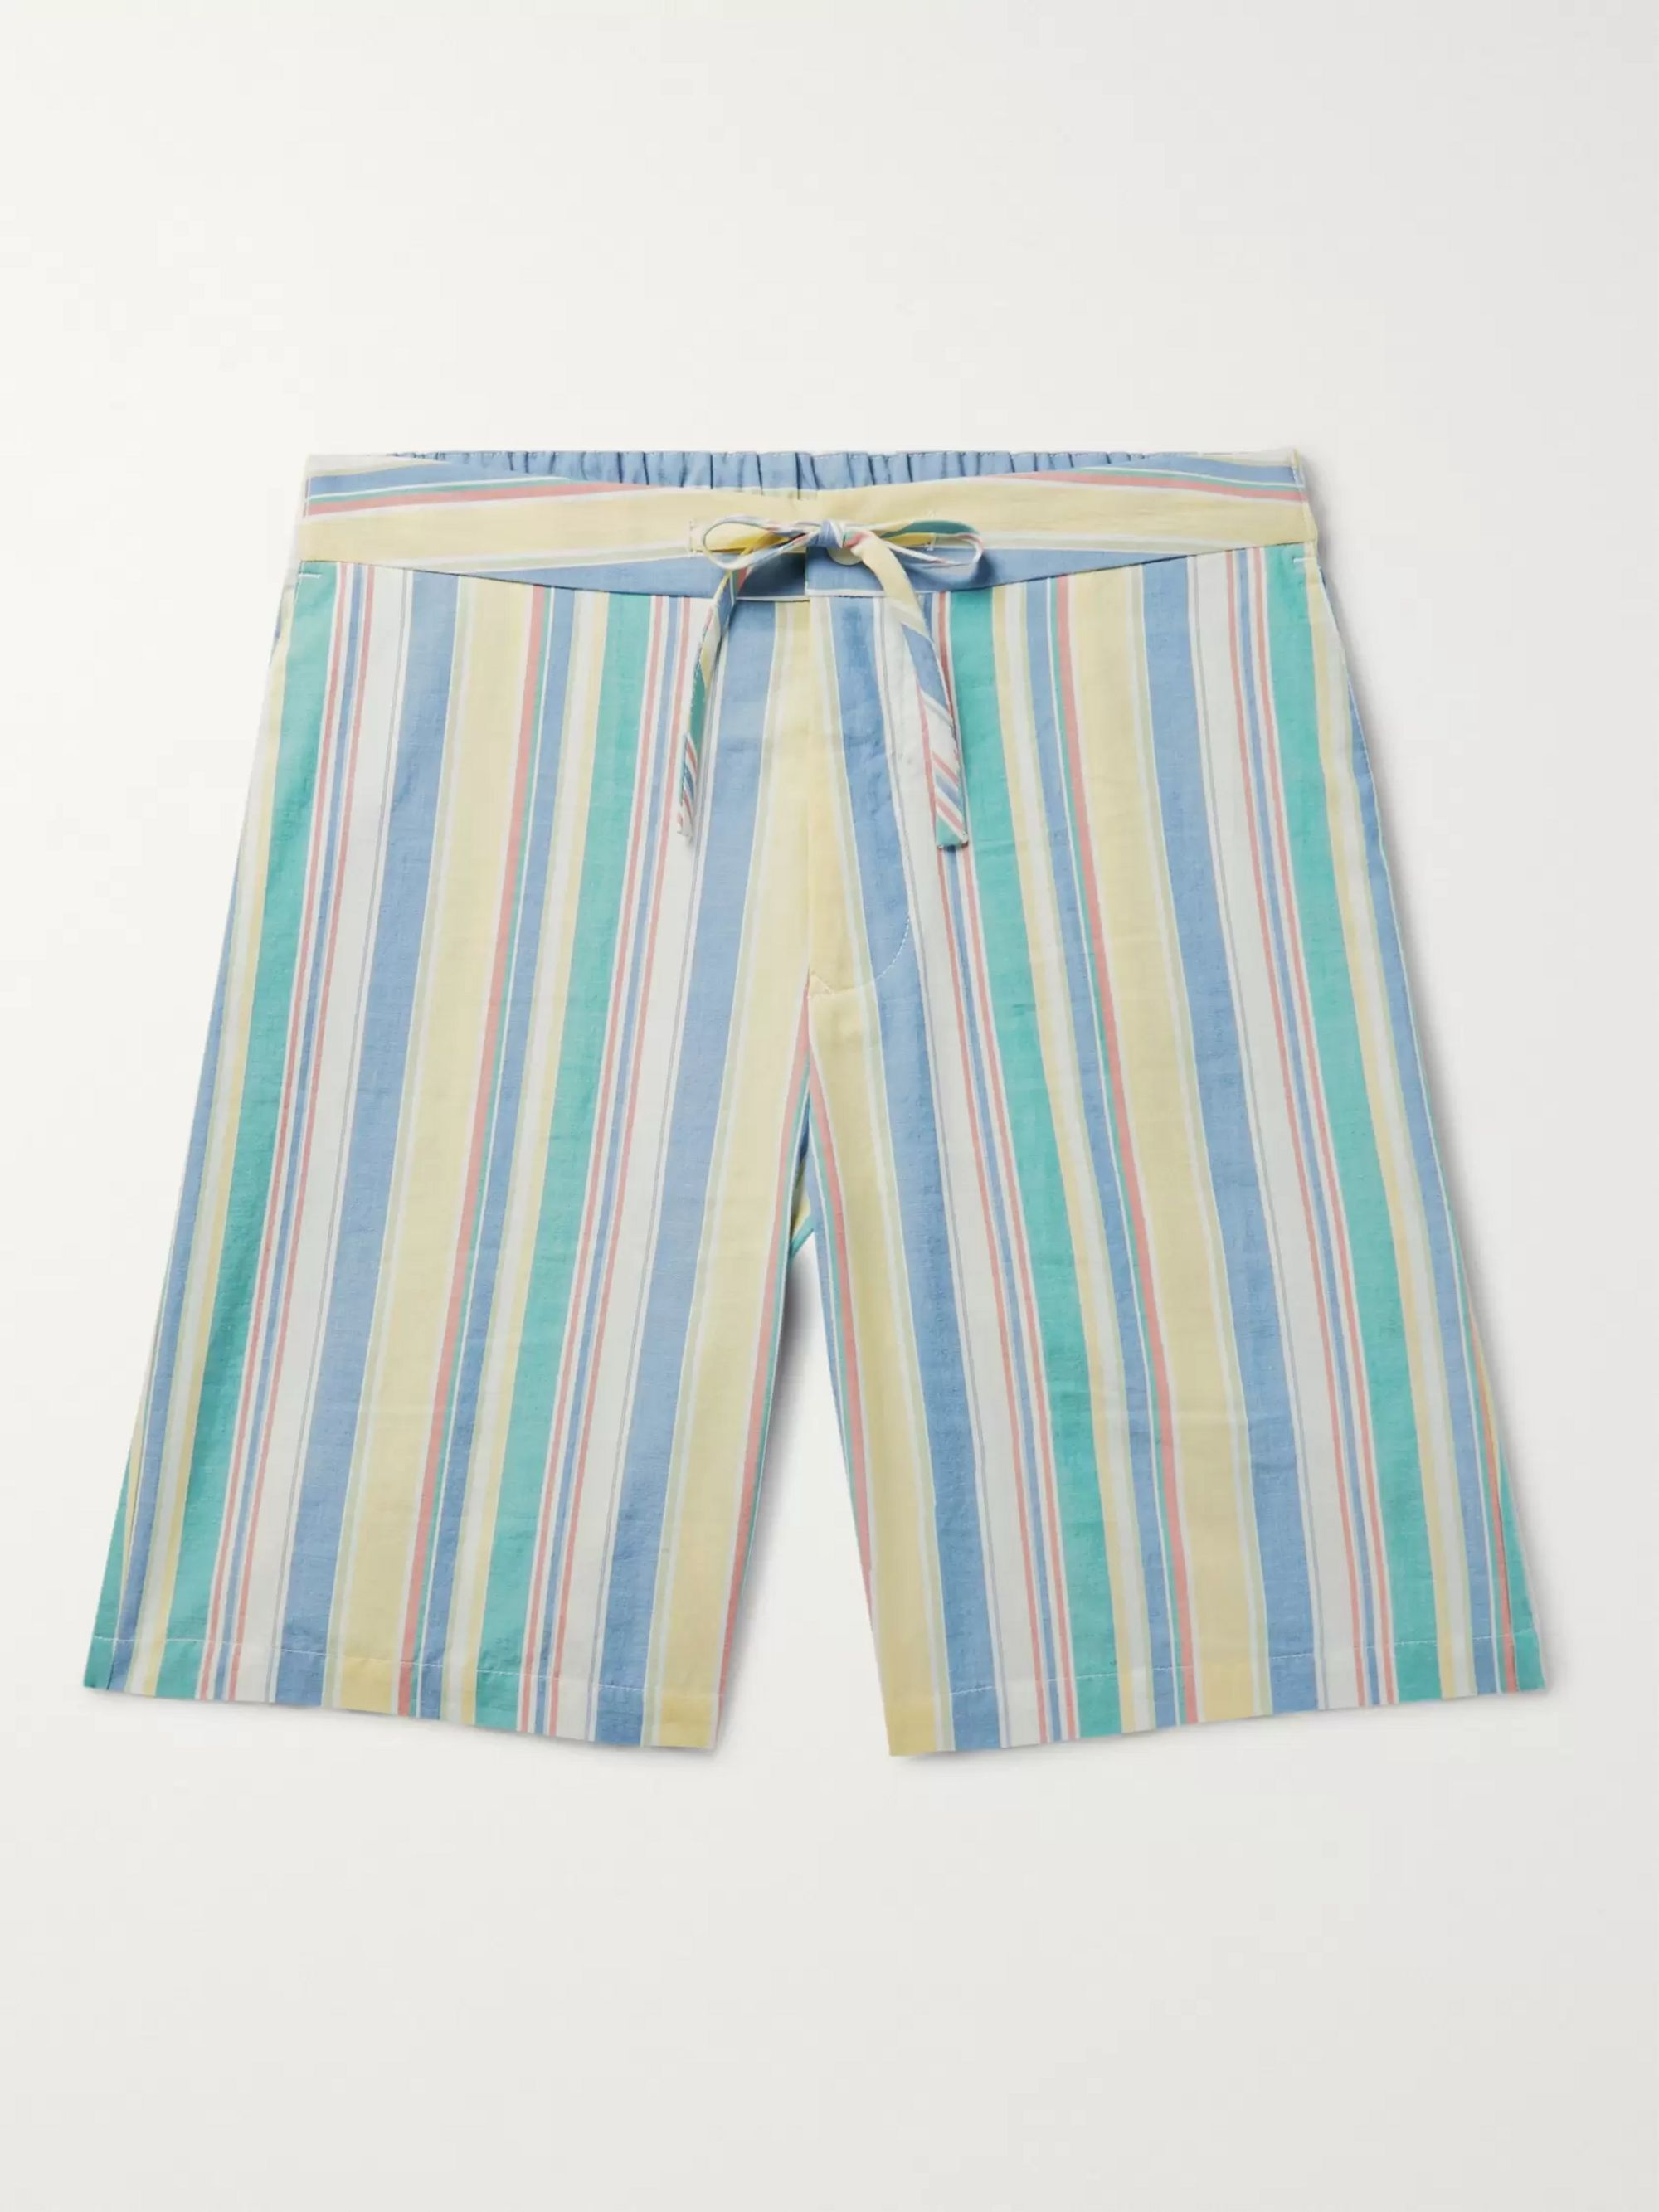 Freemans Sporting Club Slim-Fit Striped Cotton Drawstring Shorts